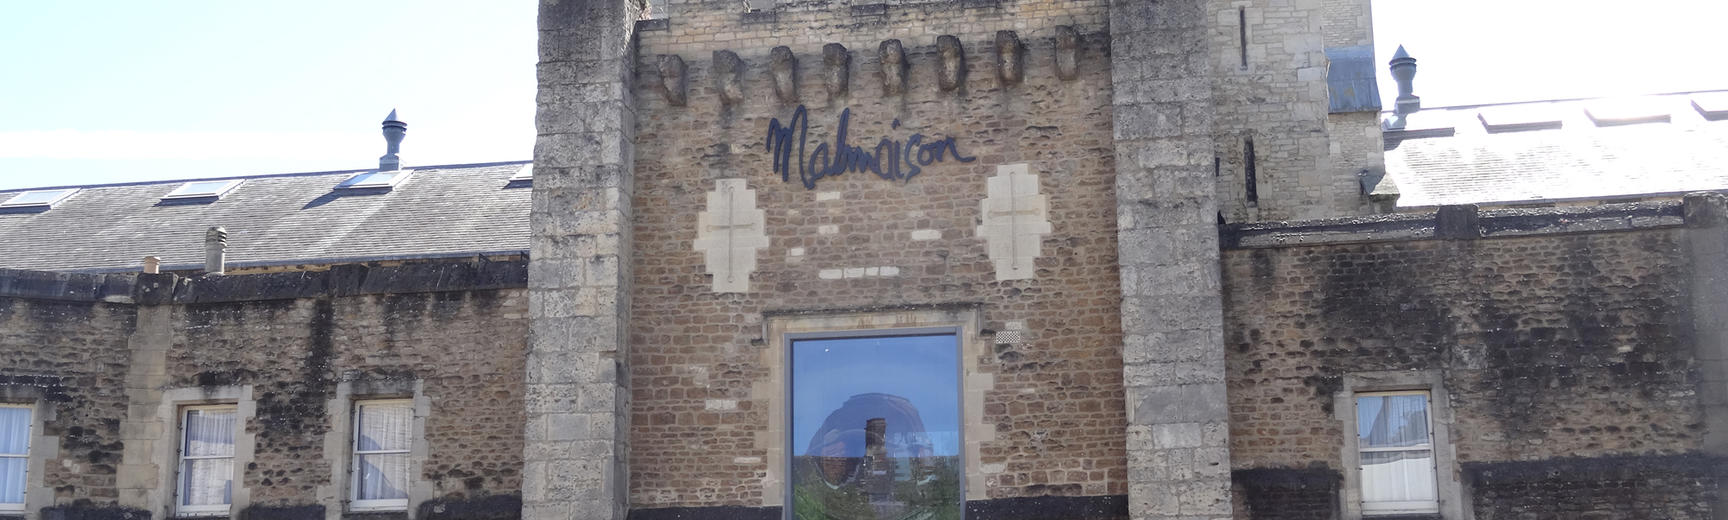 The exterior of Malmaison restaurant in Oxford